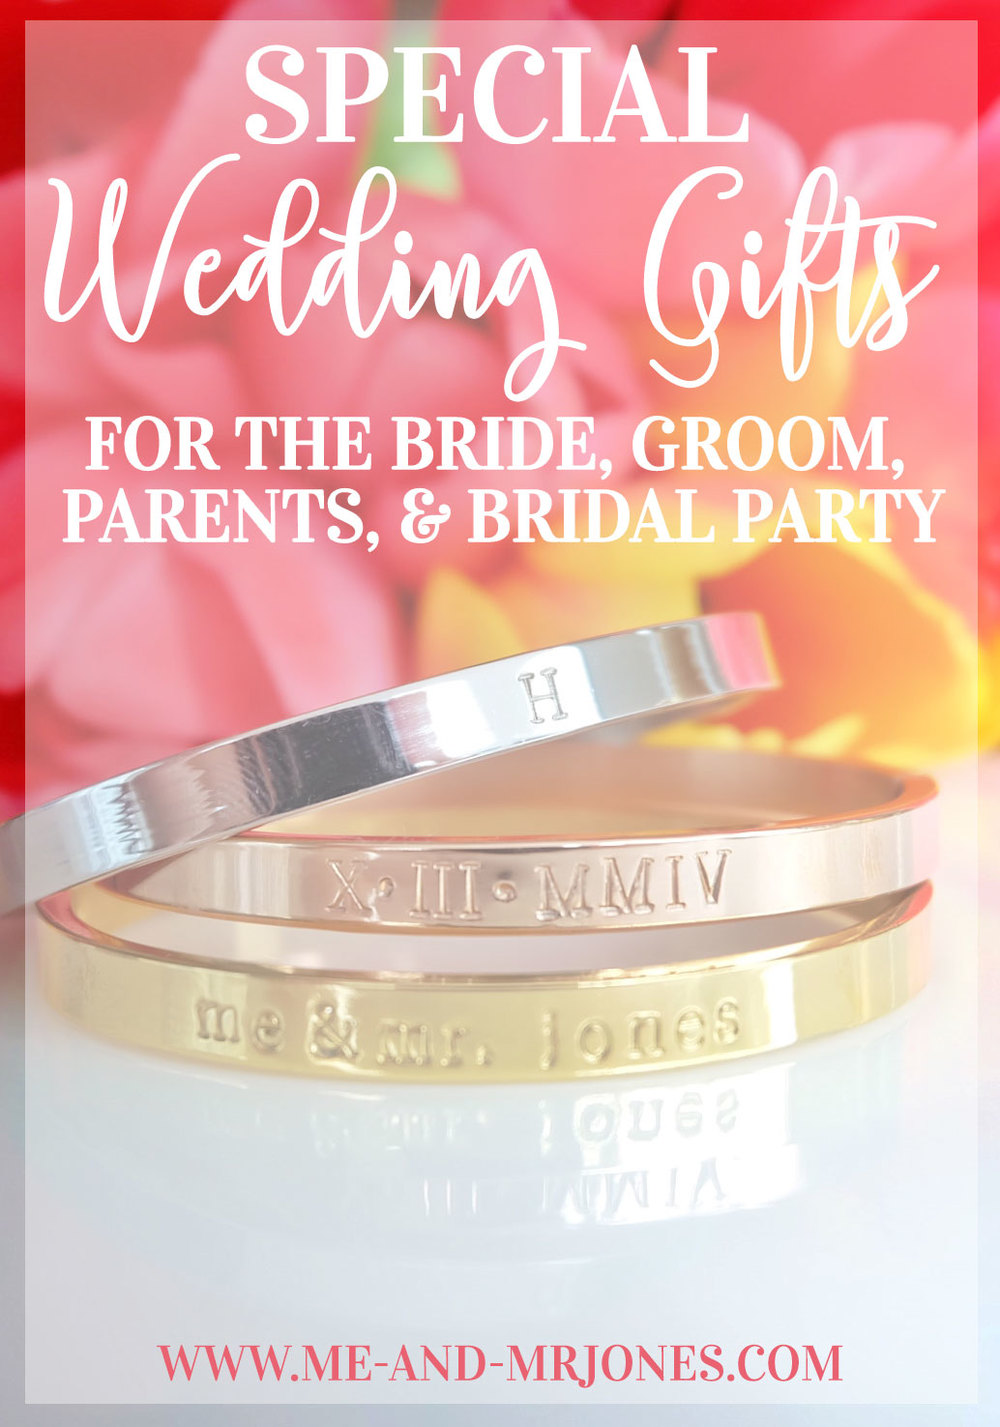 Special wedding gifts for the bride, groom, parents, and bridal party.